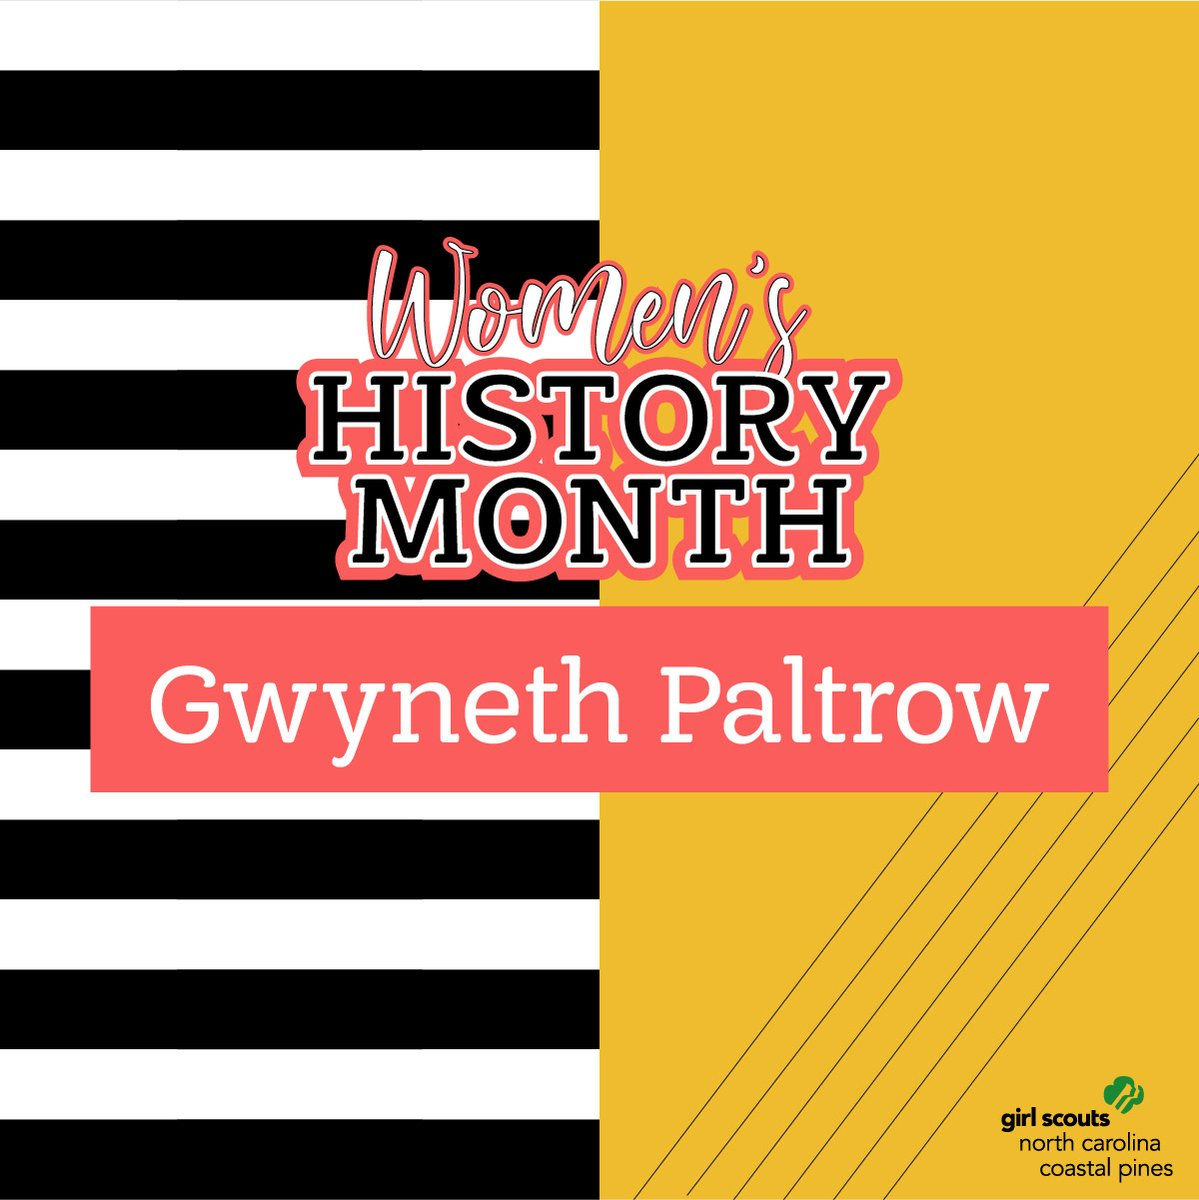 Did you know Gwyneth Paltrow was a Girl Scout? Gwyneth is an actress, businesswoman, and an advocate for women's health and wellness. https://t.co/wrID8hG3fX